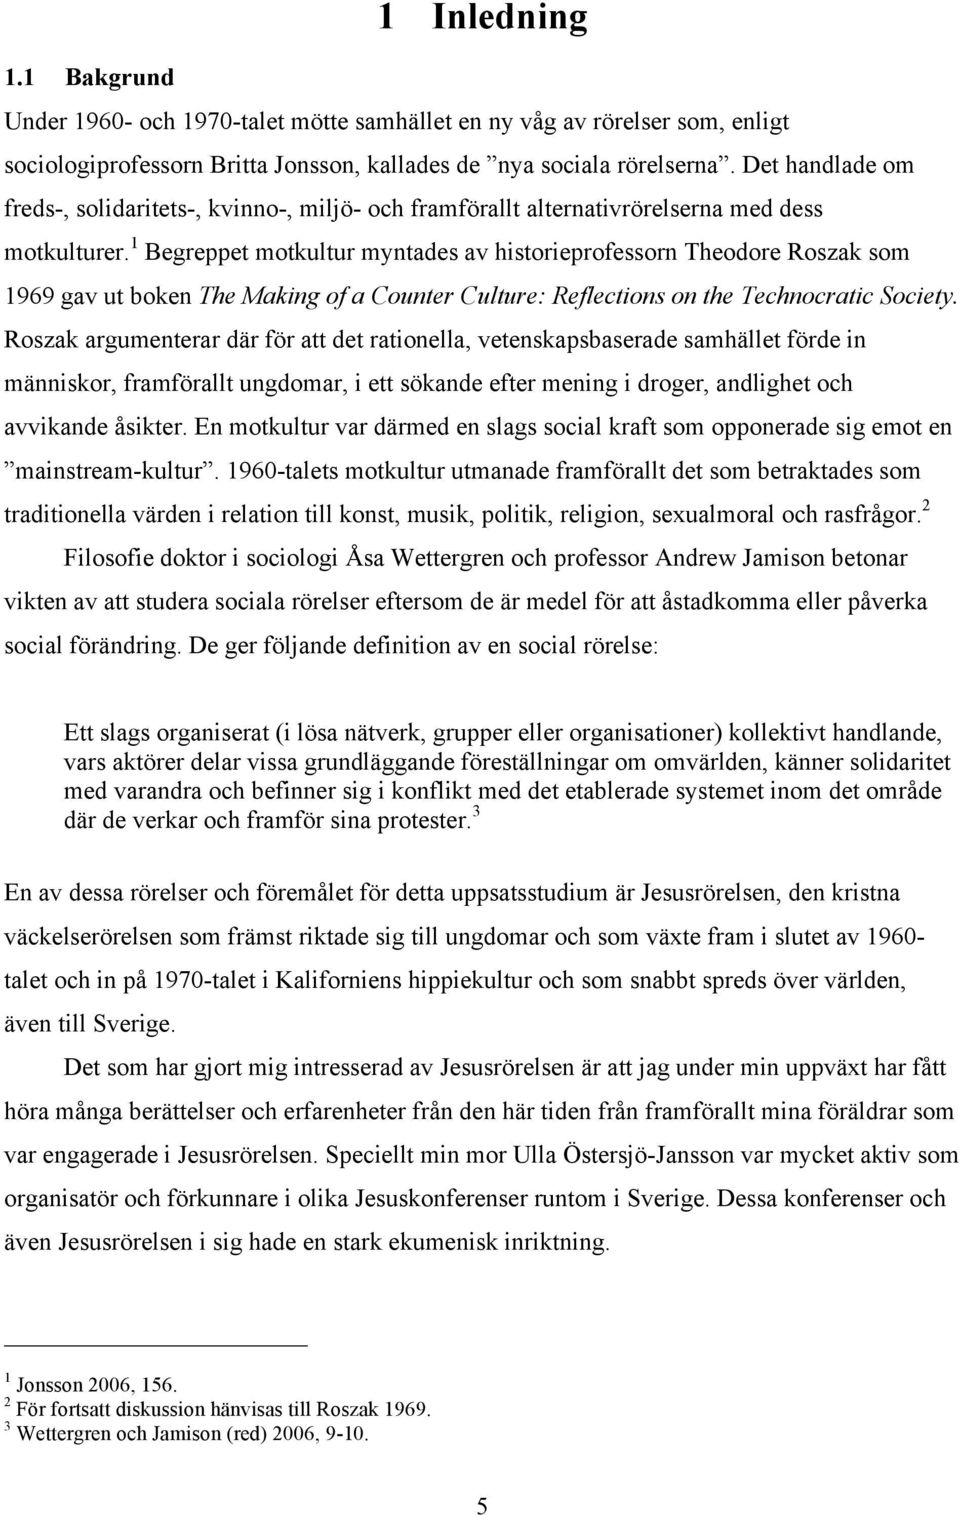 1 Begreppet motkultur myntades av historieprofessorn Theodore Roszak som 1969 gav ut boken The Making of a Counter Culture: Reflections on the Technocratic Society.